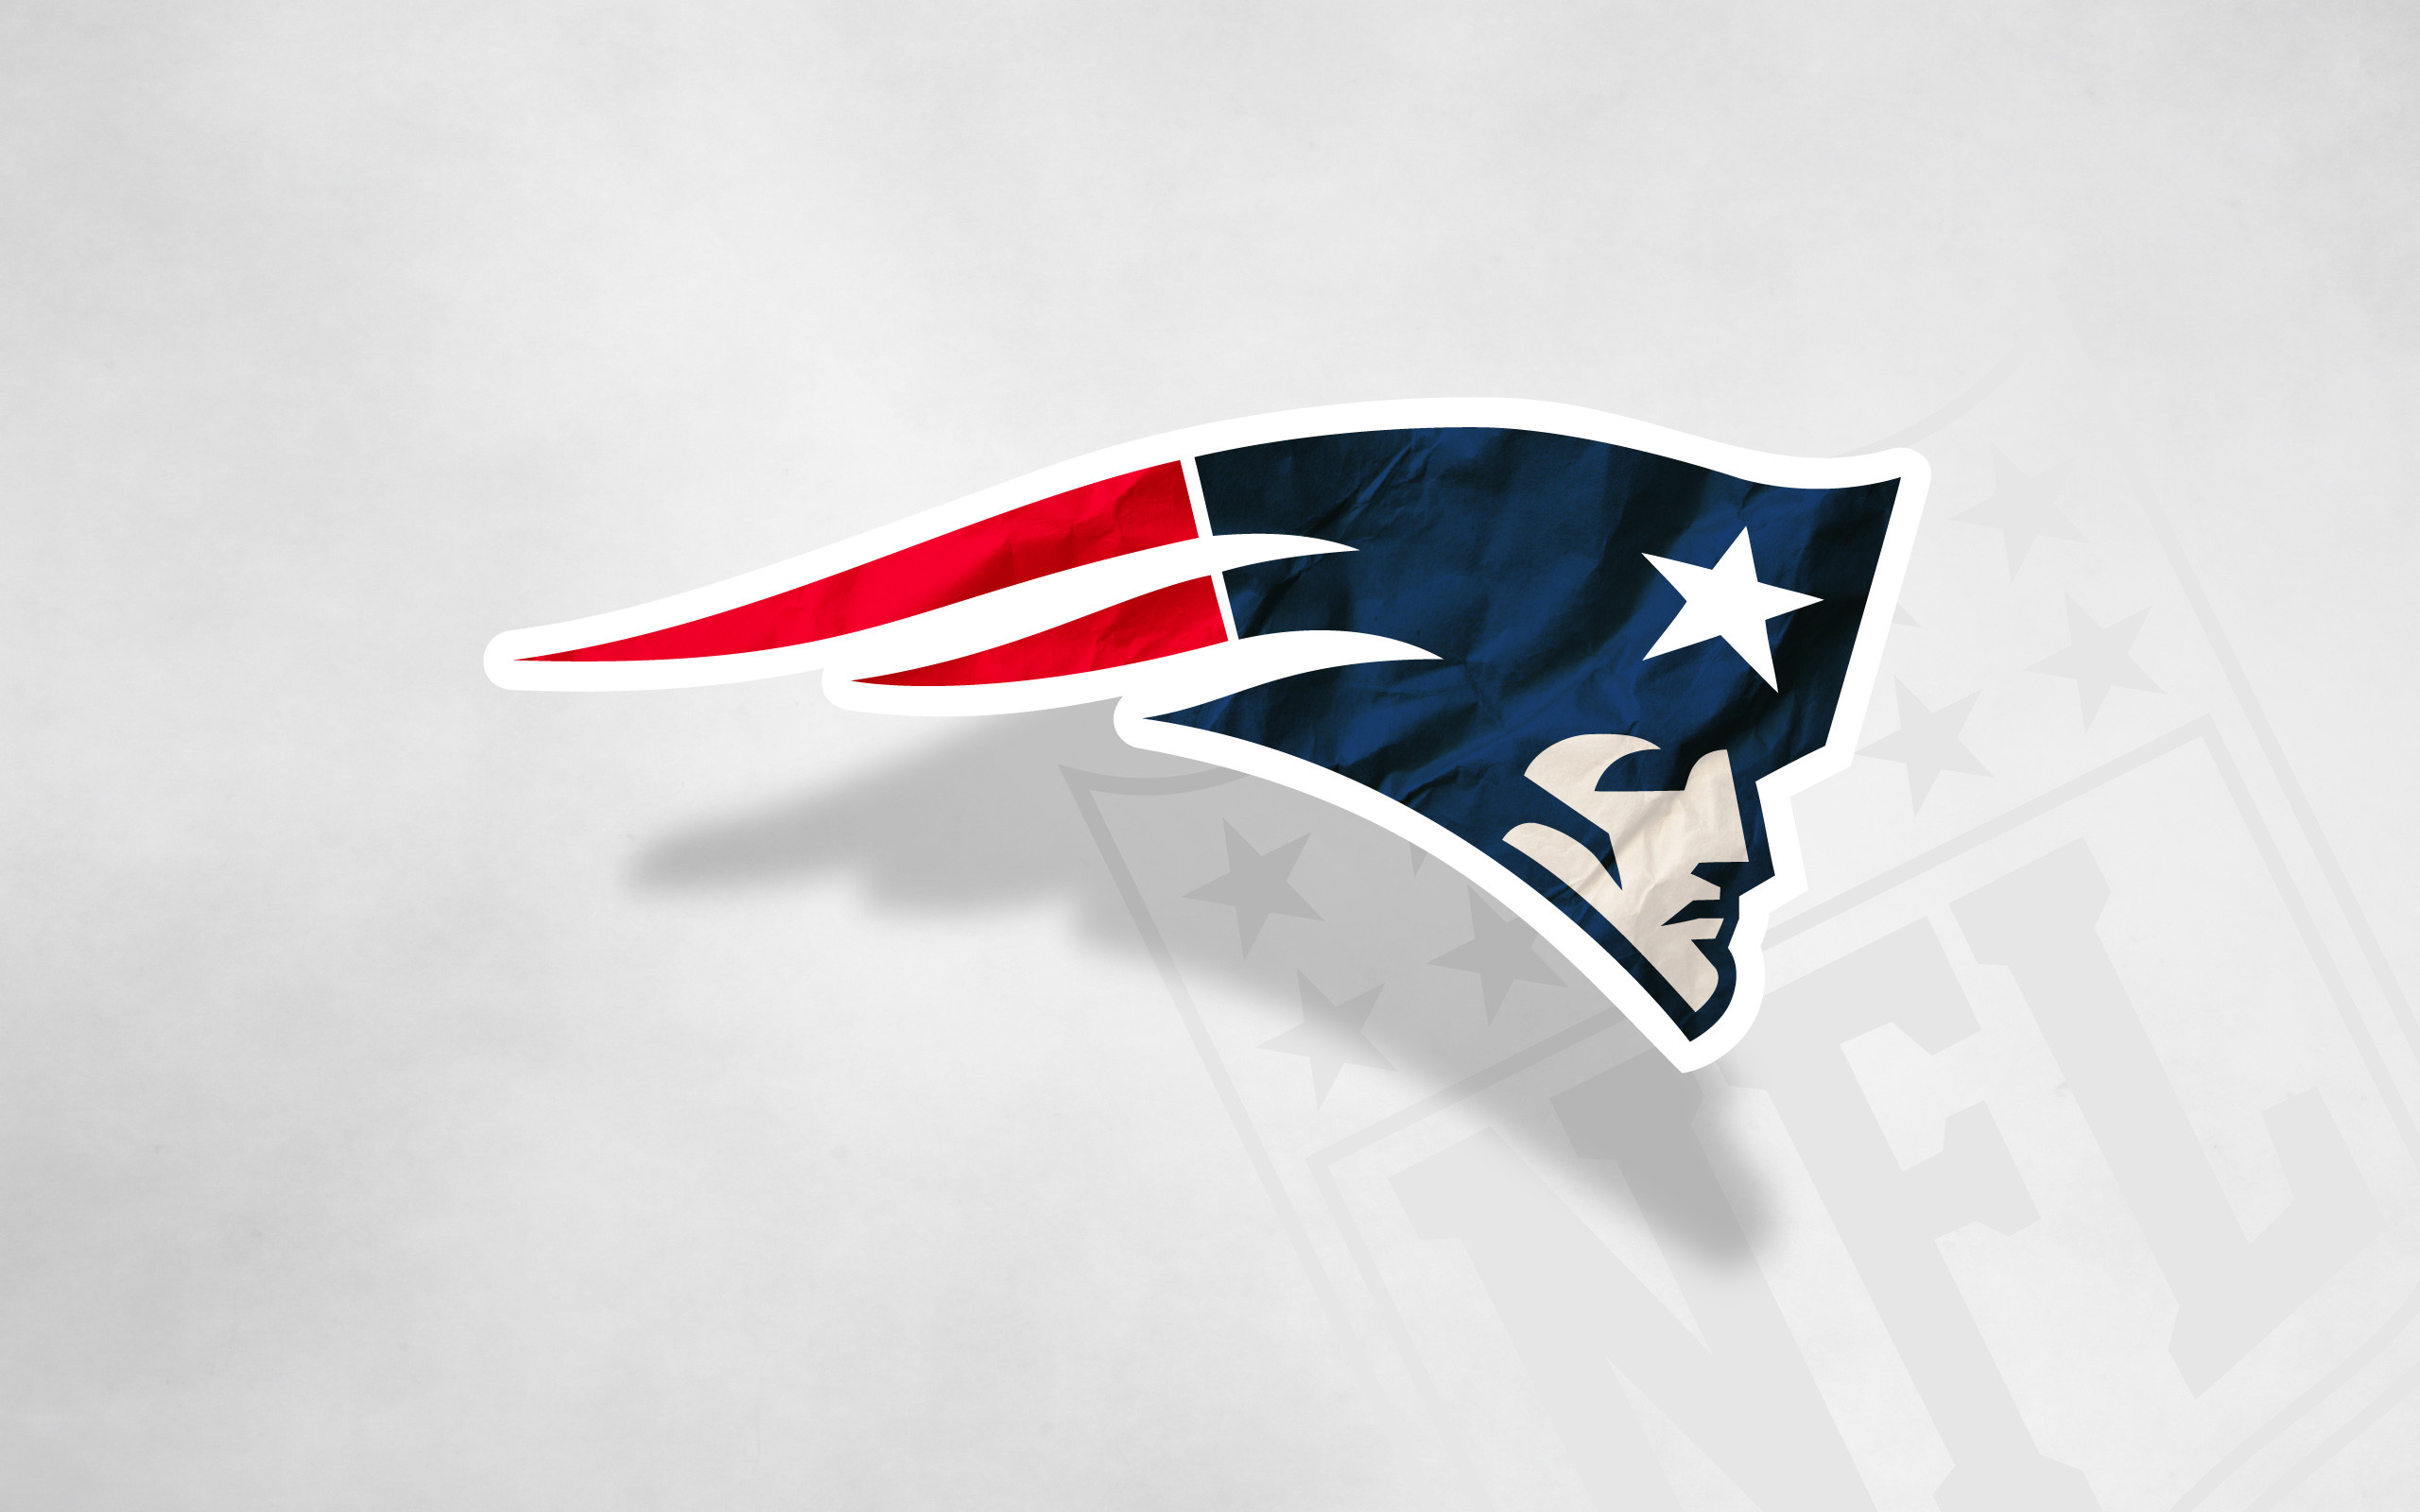 2560x1600 Hd Wallpapers New England Patriots Logo 1024 X 768 136 Kb Jpeg